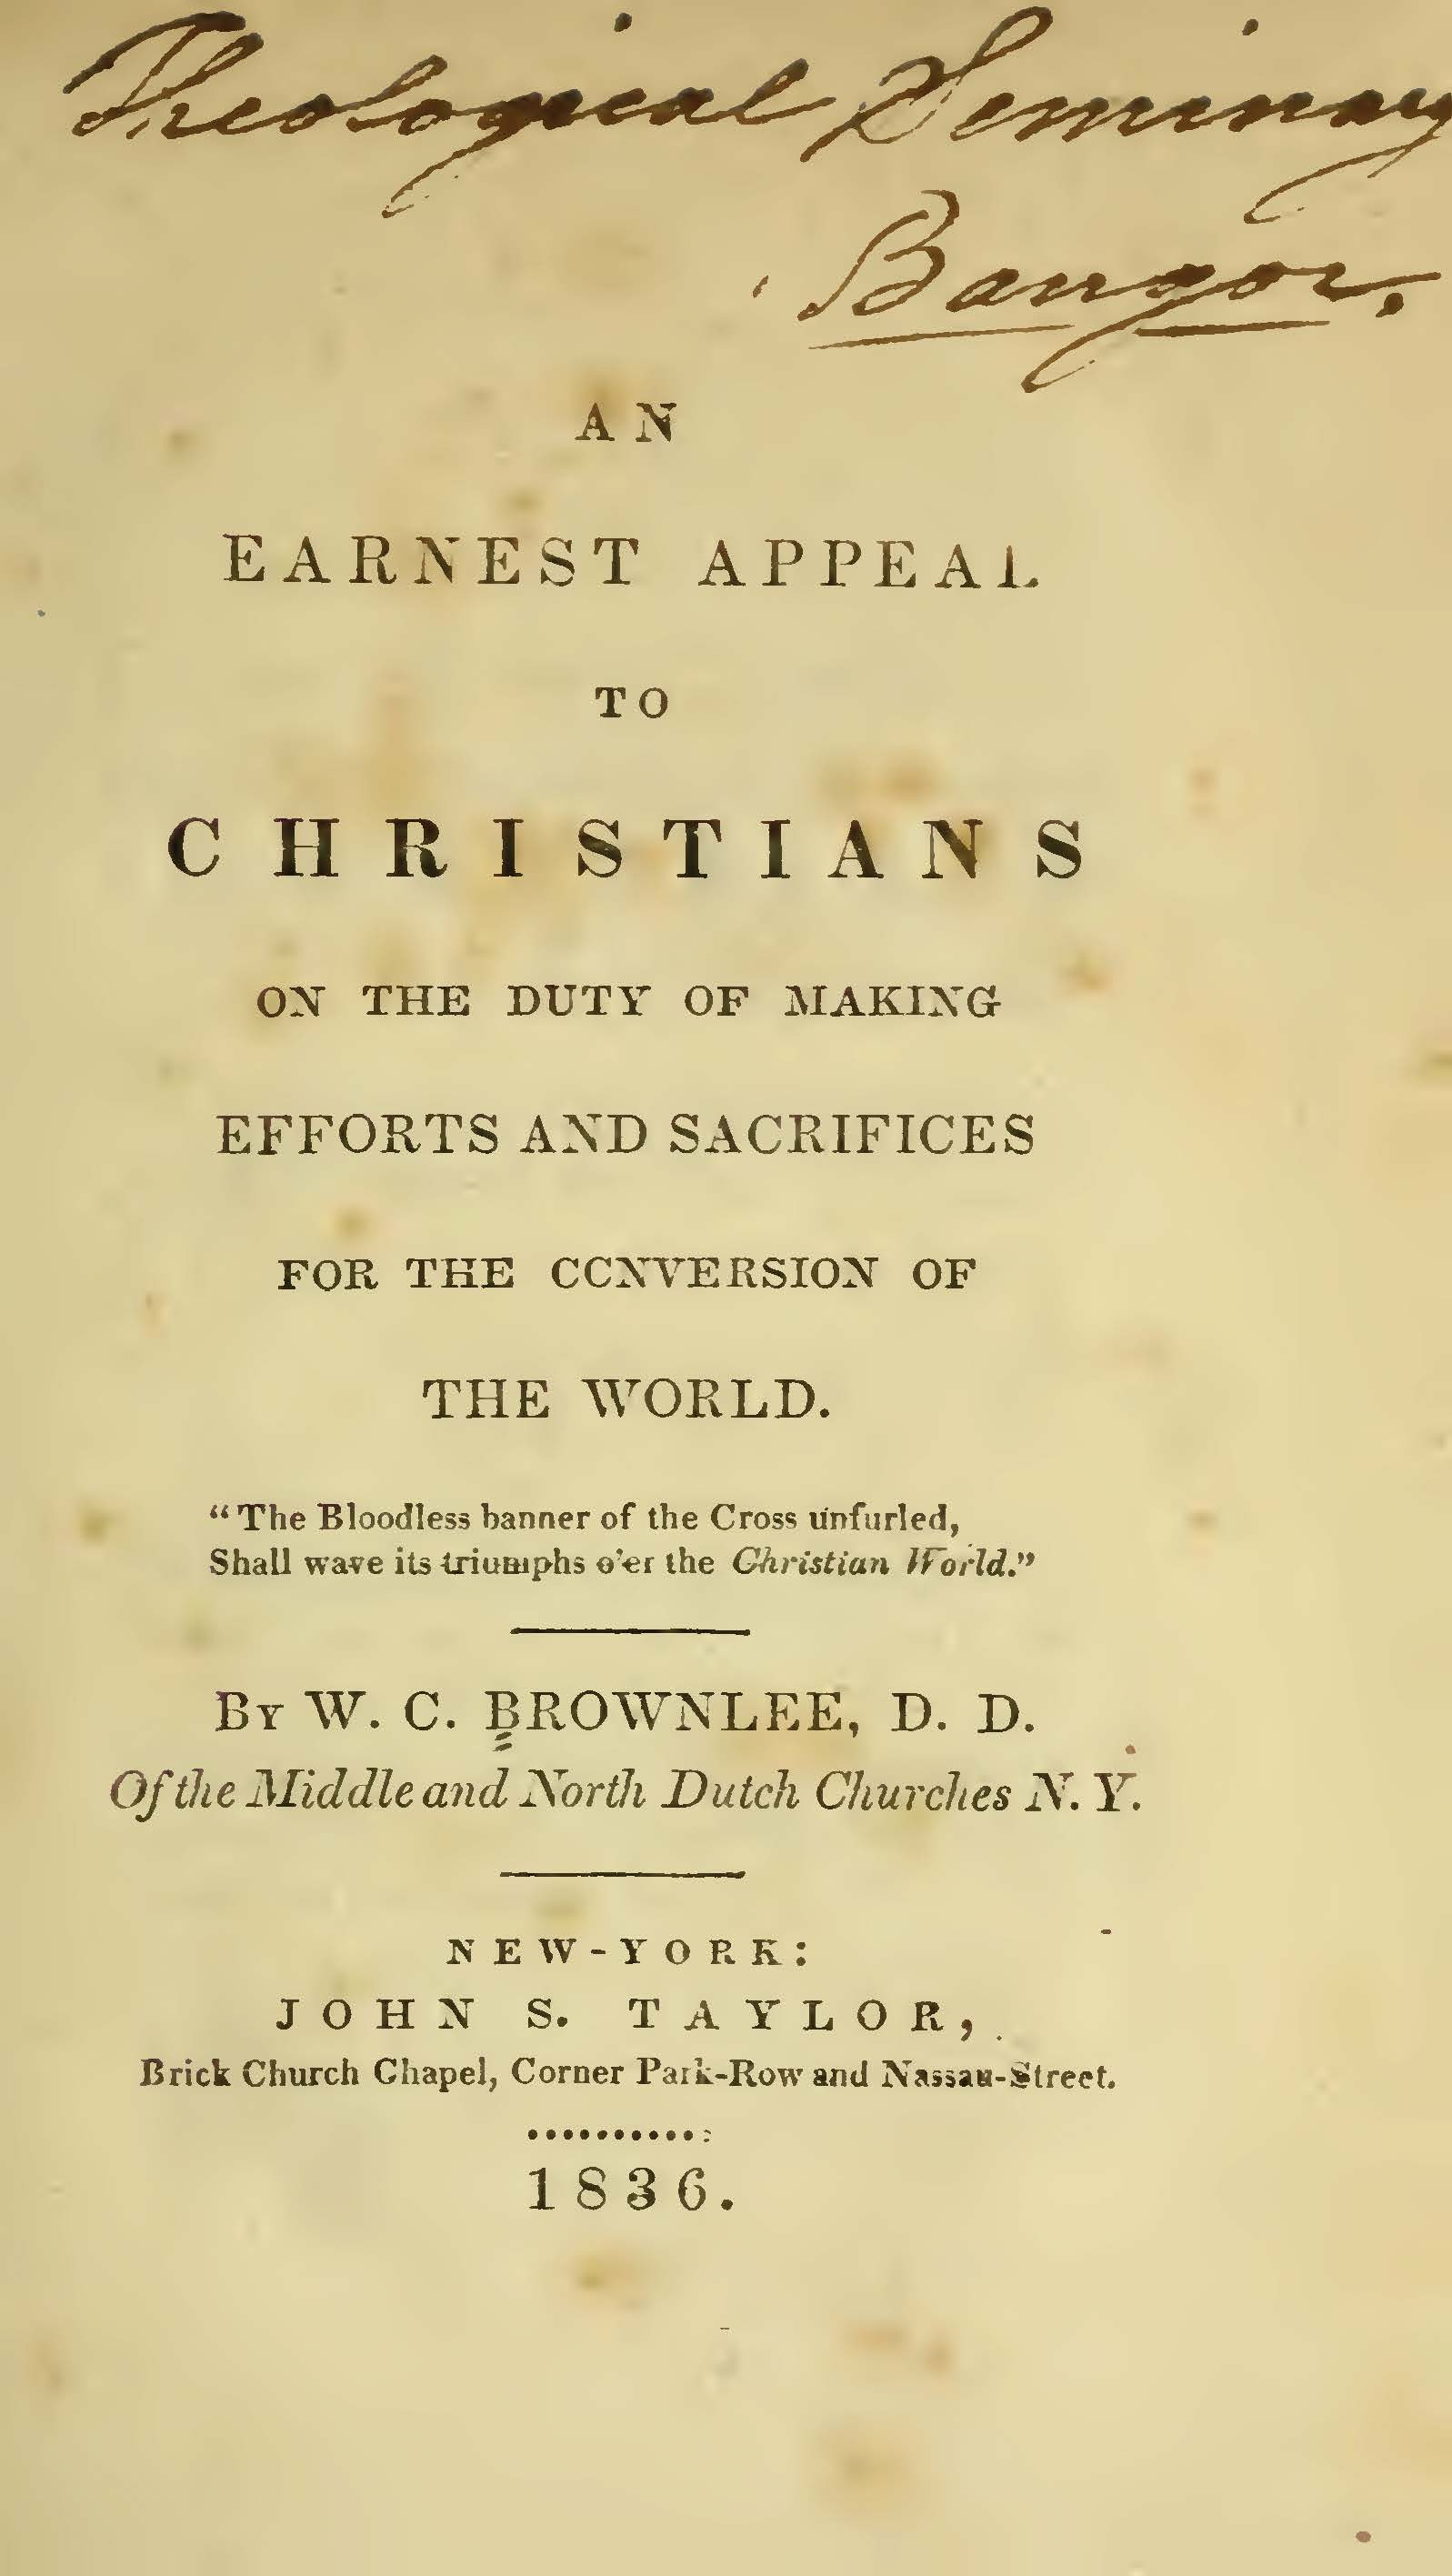 Brownlee, William Craig, An Earnest Appeal to Christians on the Duty of Making Efforts and Sacrifices for the Conversion of the World Title Page.jpg